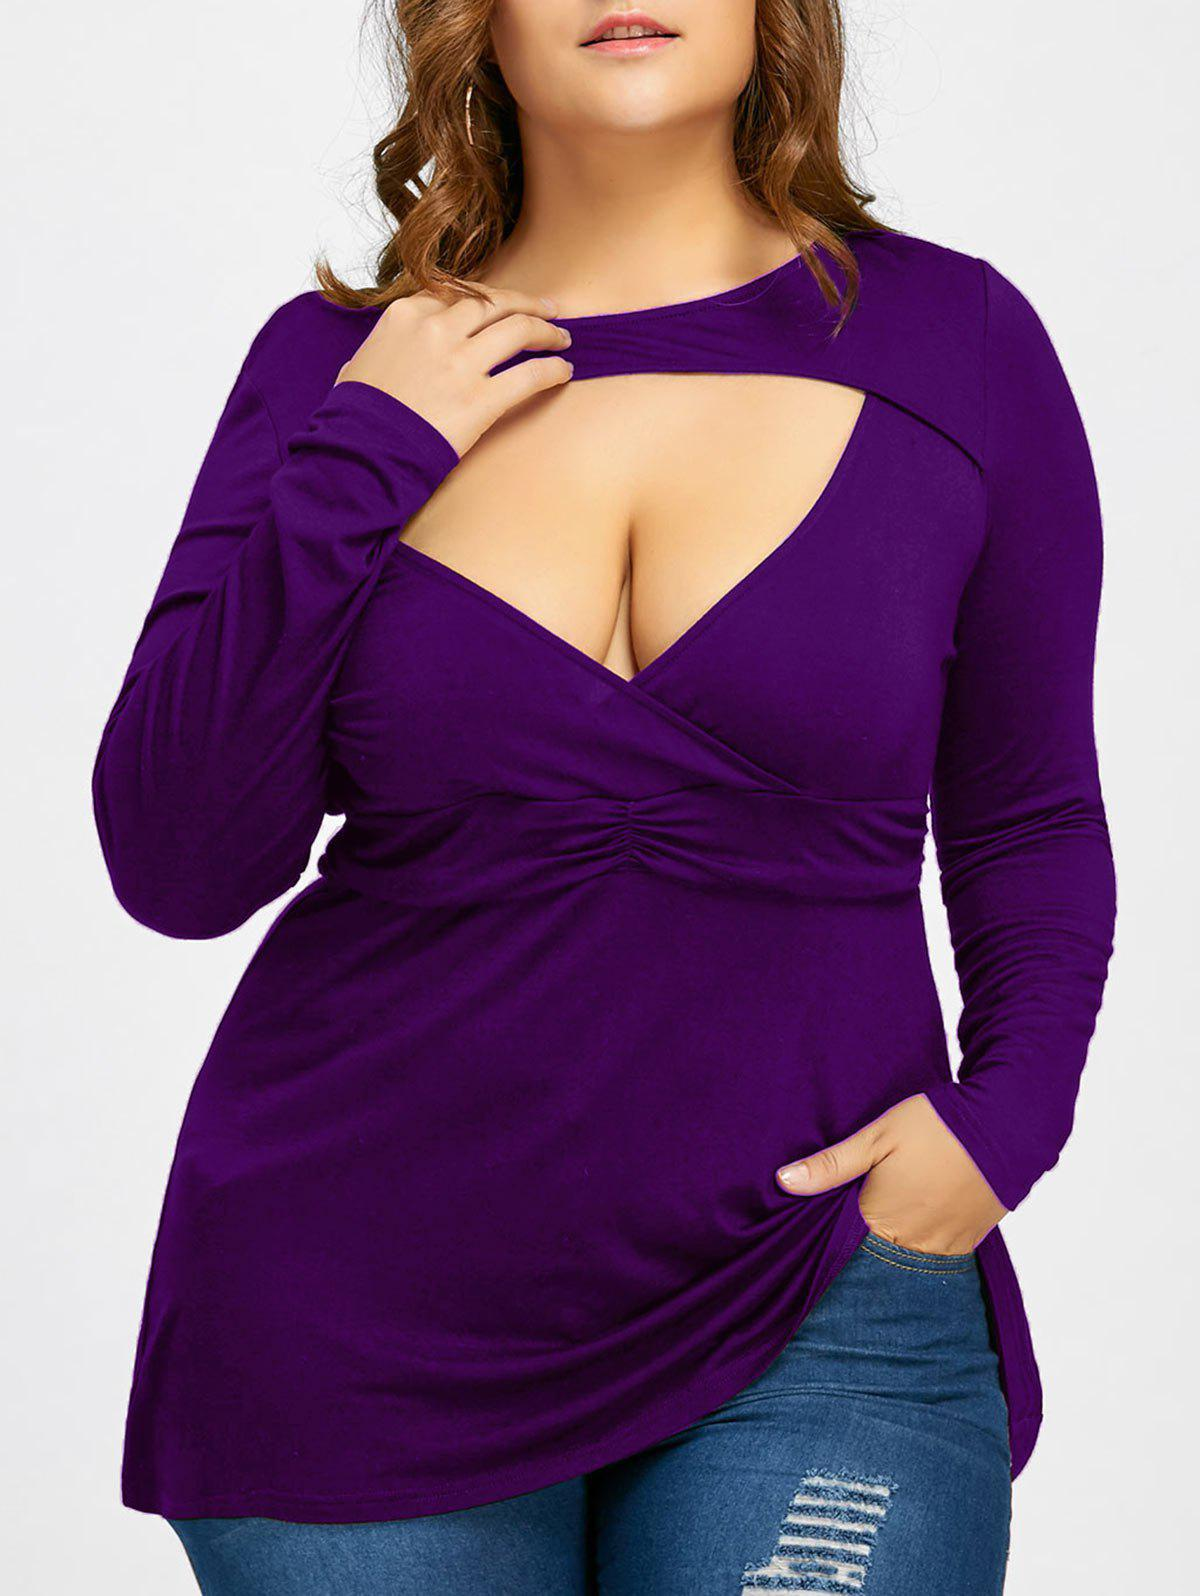 Empire Waist Plus Size Low Cut T-shirtWOMEN<br><br>Size: 4XL; Color: PURPLE; Material: Cotton Blends,Spandex; Shirt Length: Long; Sleeve Length: Full; Collar: Crew Neck; Style: Fashion; Season: Fall,Spring; Pattern Type: Solid; Weight: 0.2970kg; Package Contents: 1 x T-shirt;